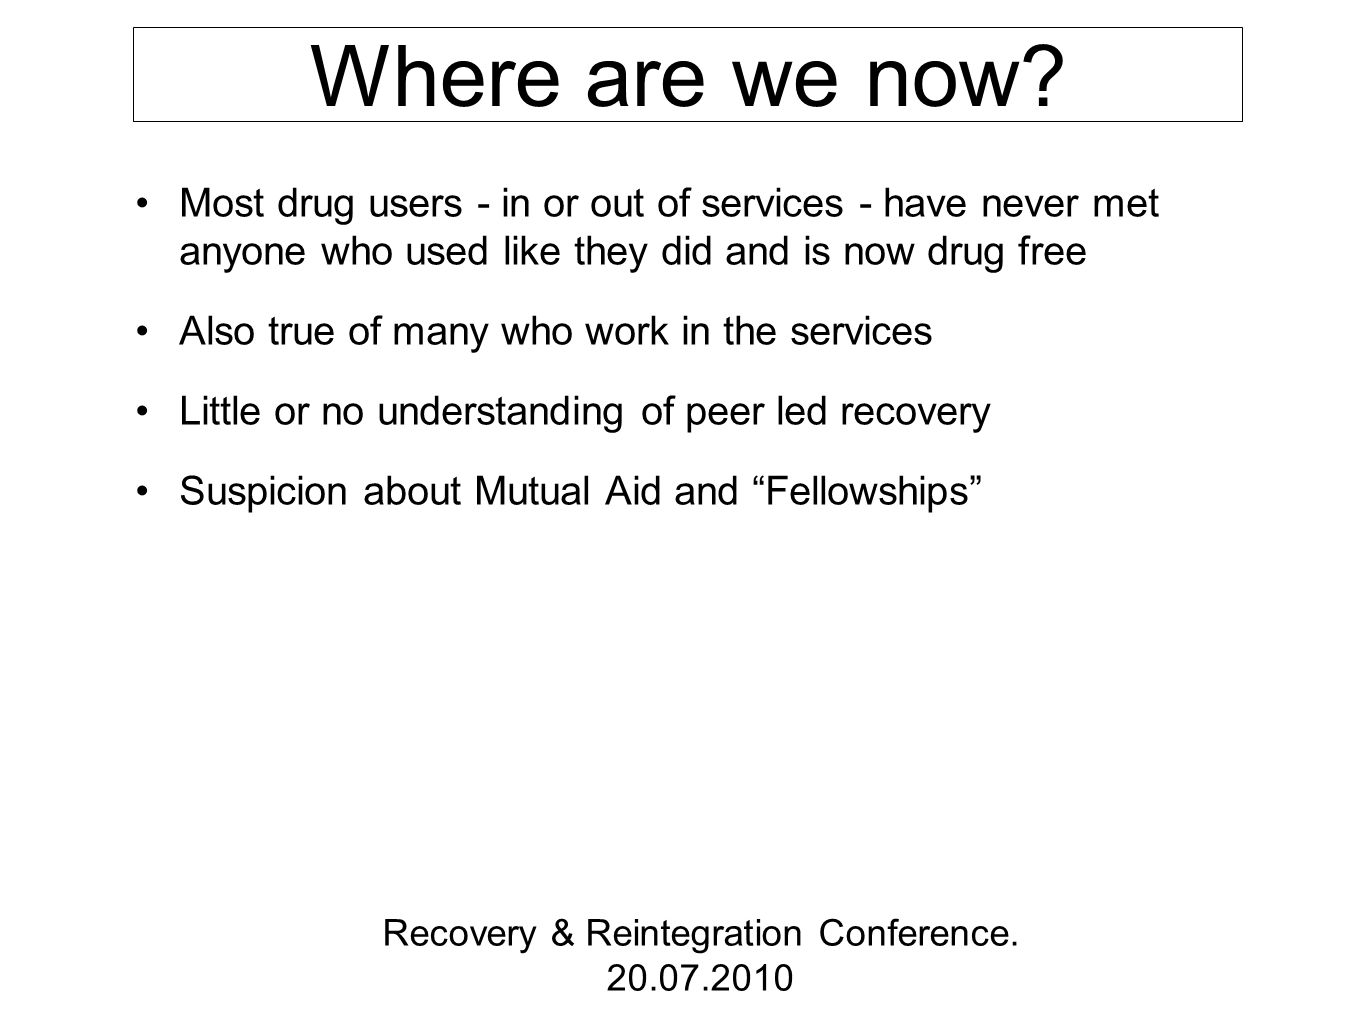 Recovery & Reintegration Conference. 20.07.2010